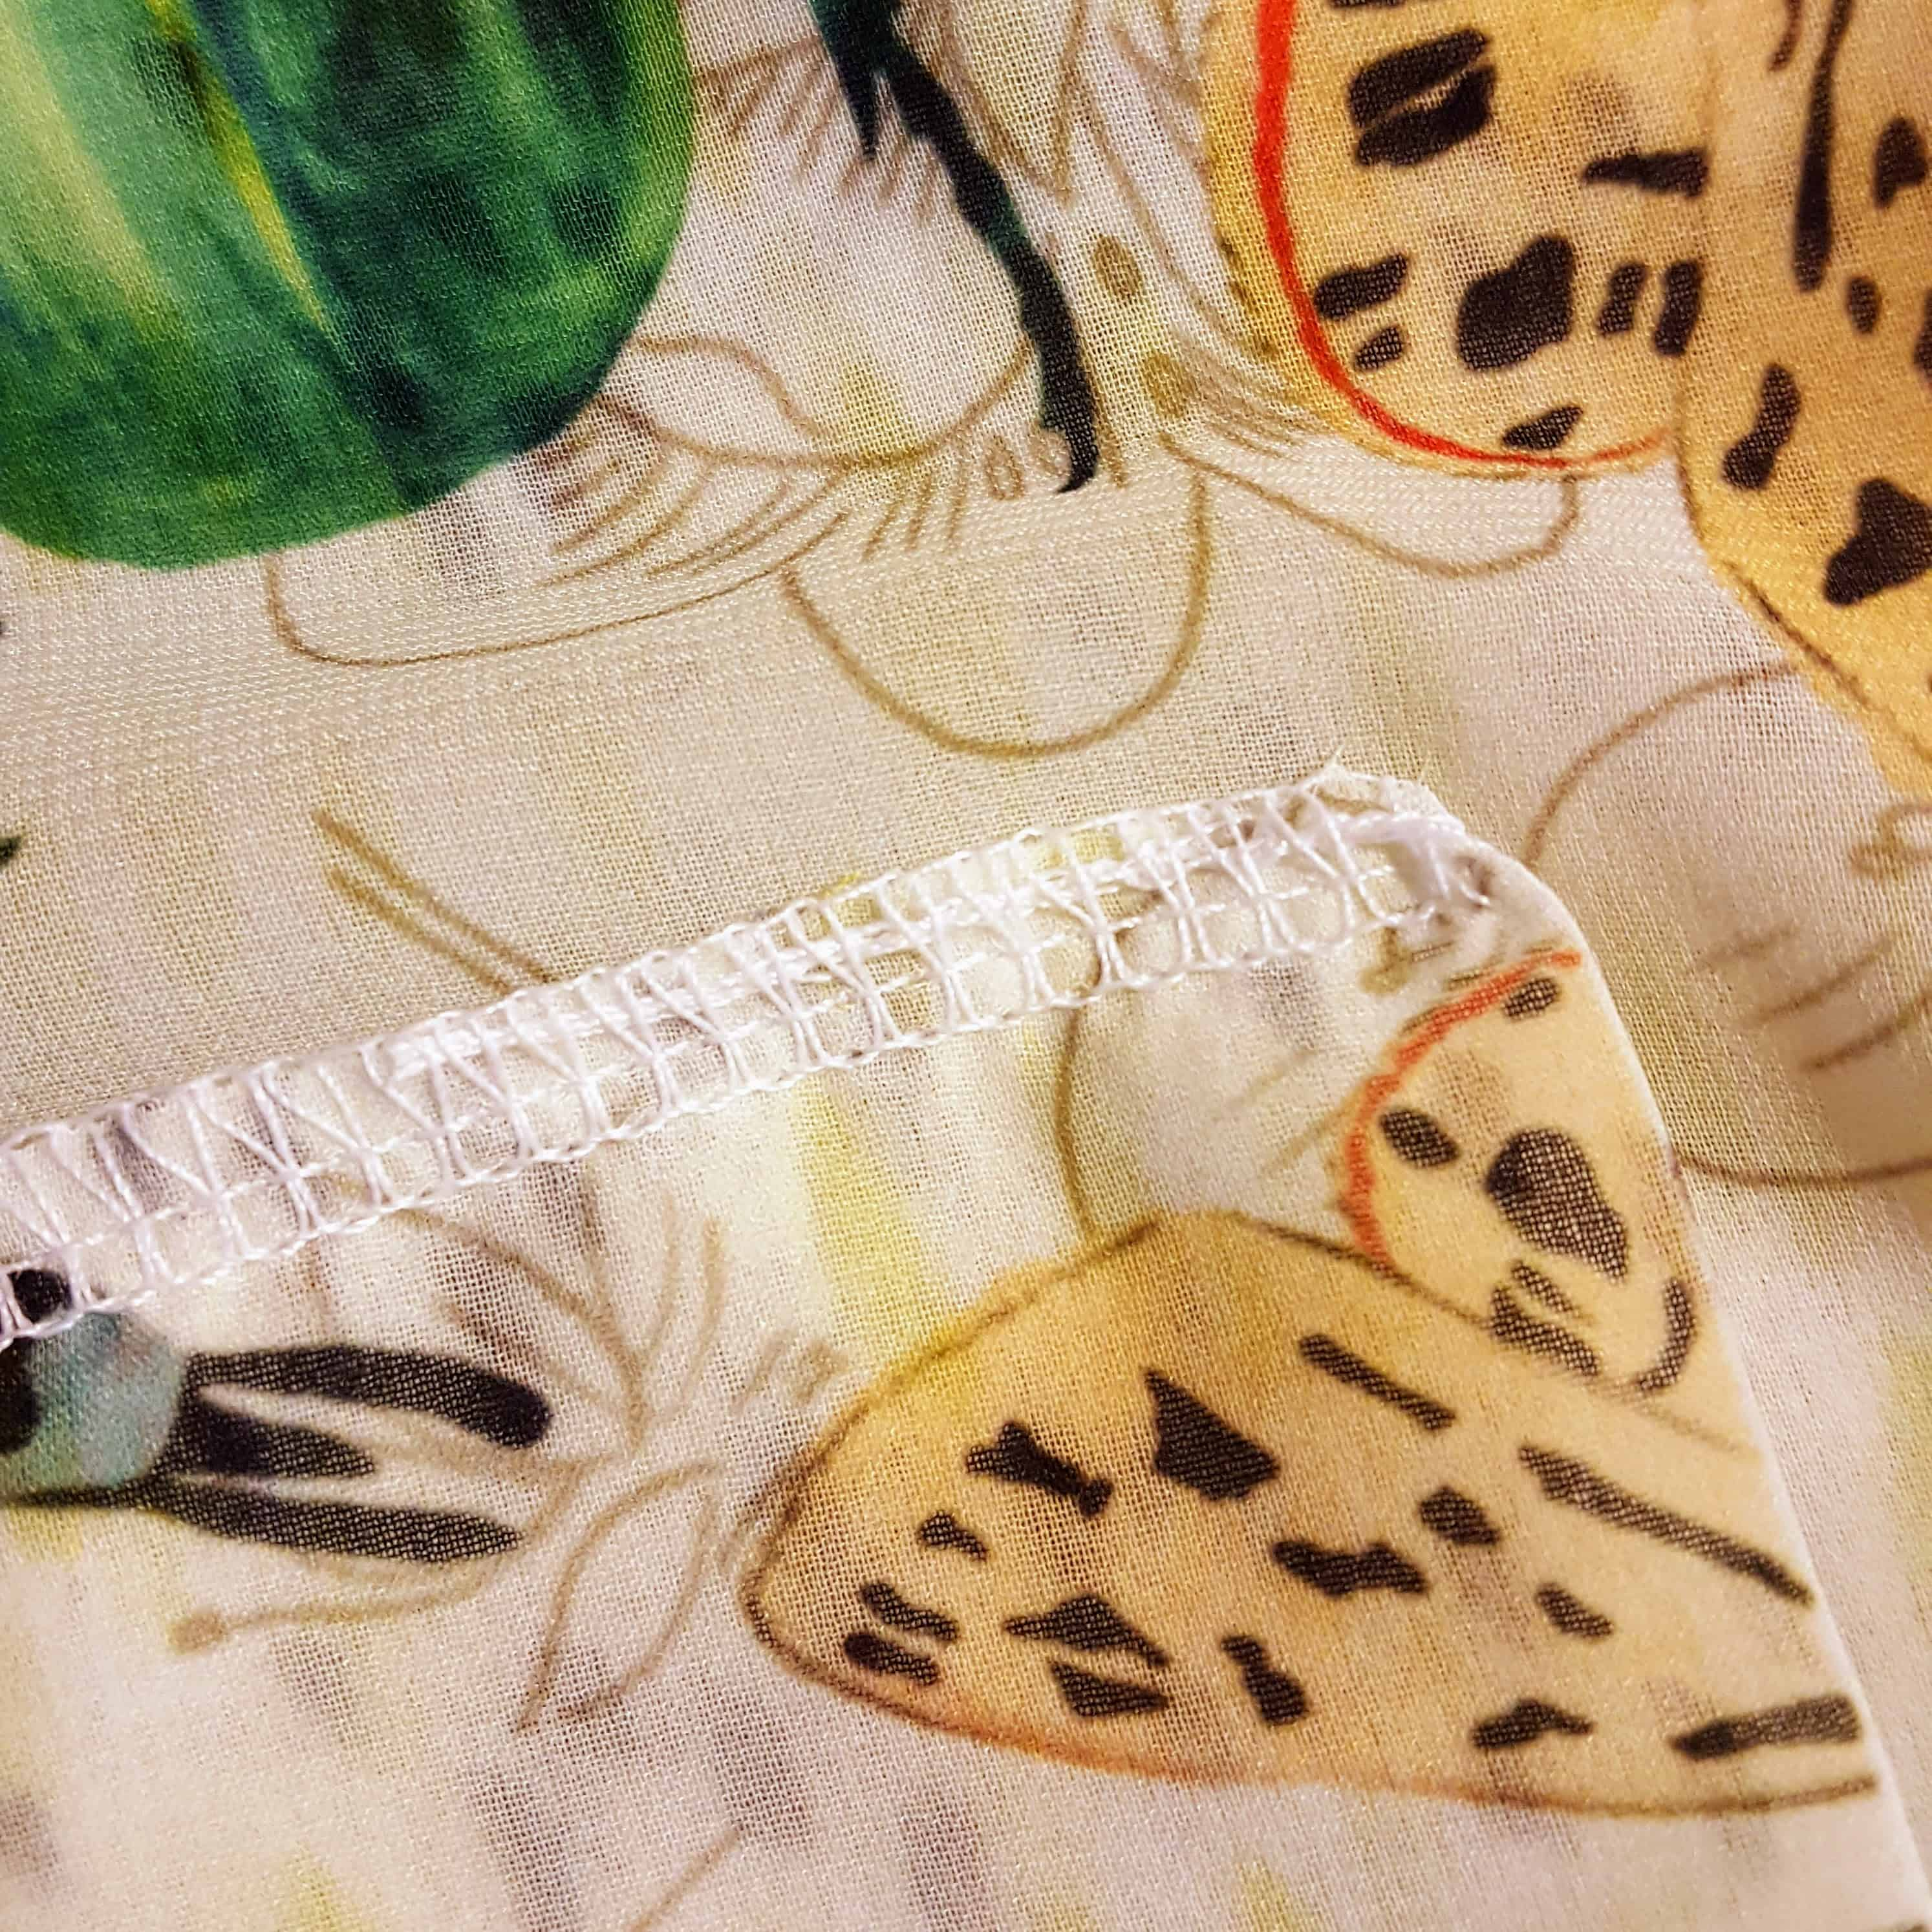 The tail made from thread is now held securely and discretely within the serged seam! | Spoonflower Blog